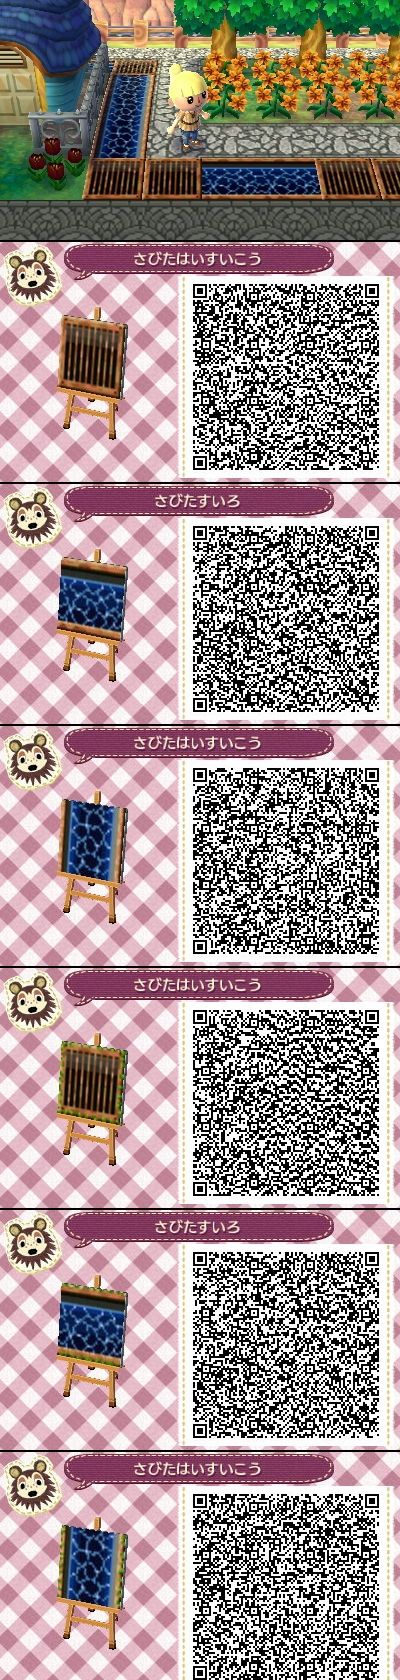 Animal crossing new leaf qr codes water outfits qr codes for Floor qr codes new leaf